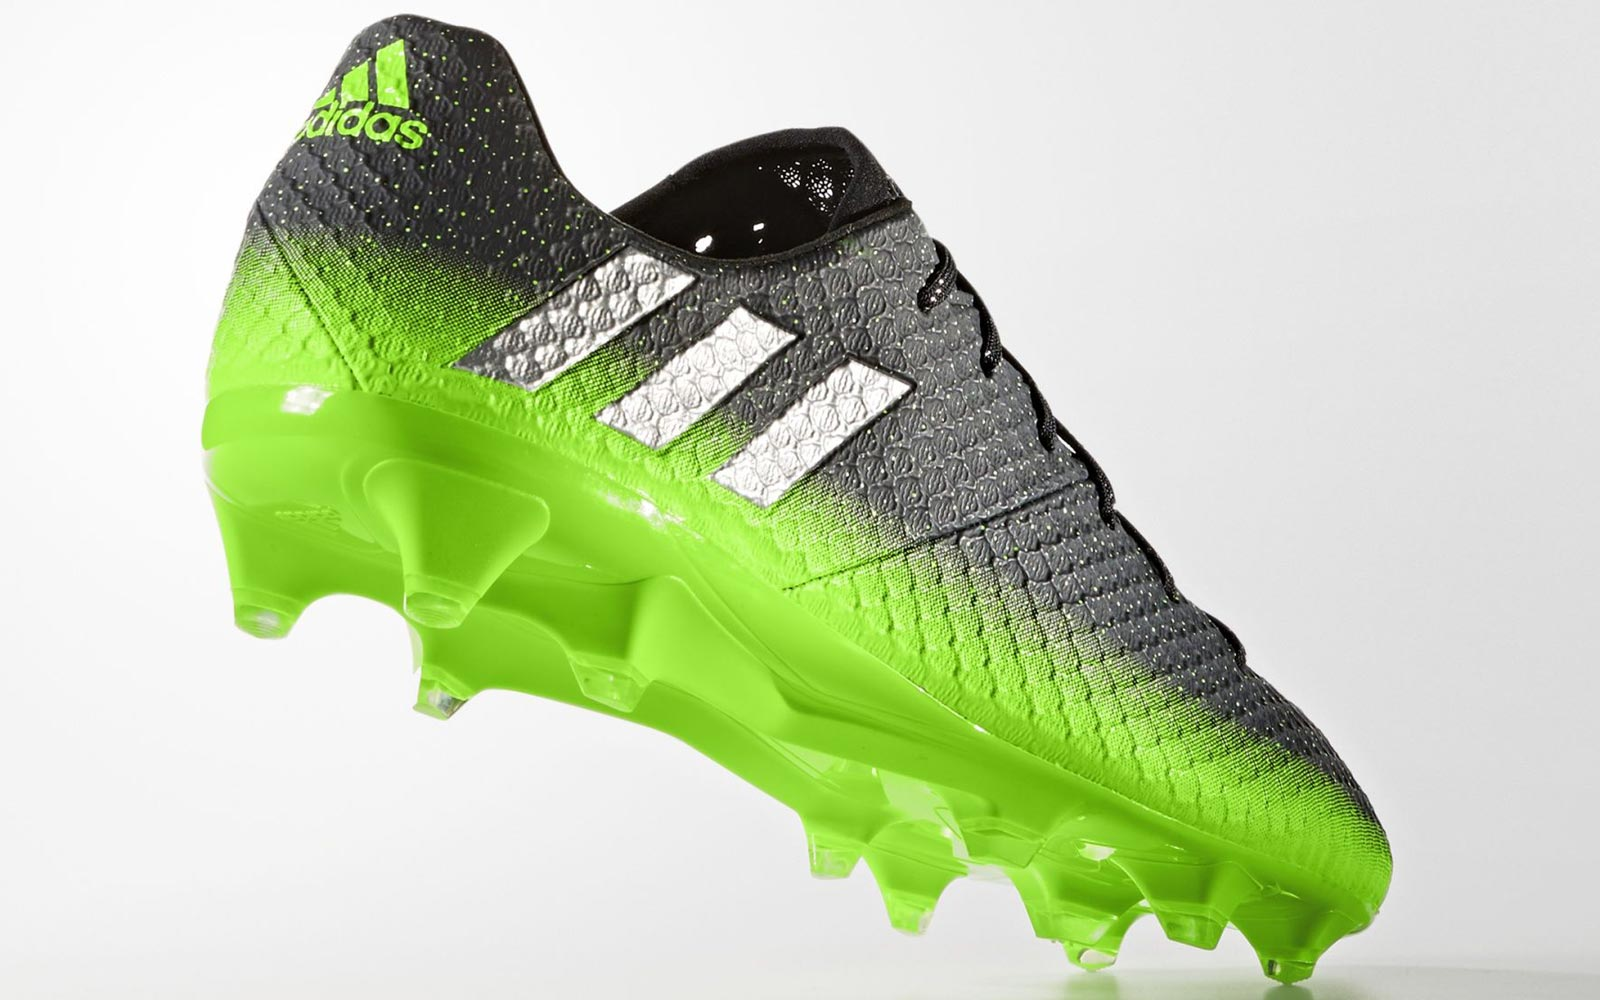 adidas messi 16 1 space dust takes off. Black Bedroom Furniture Sets. Home Design Ideas